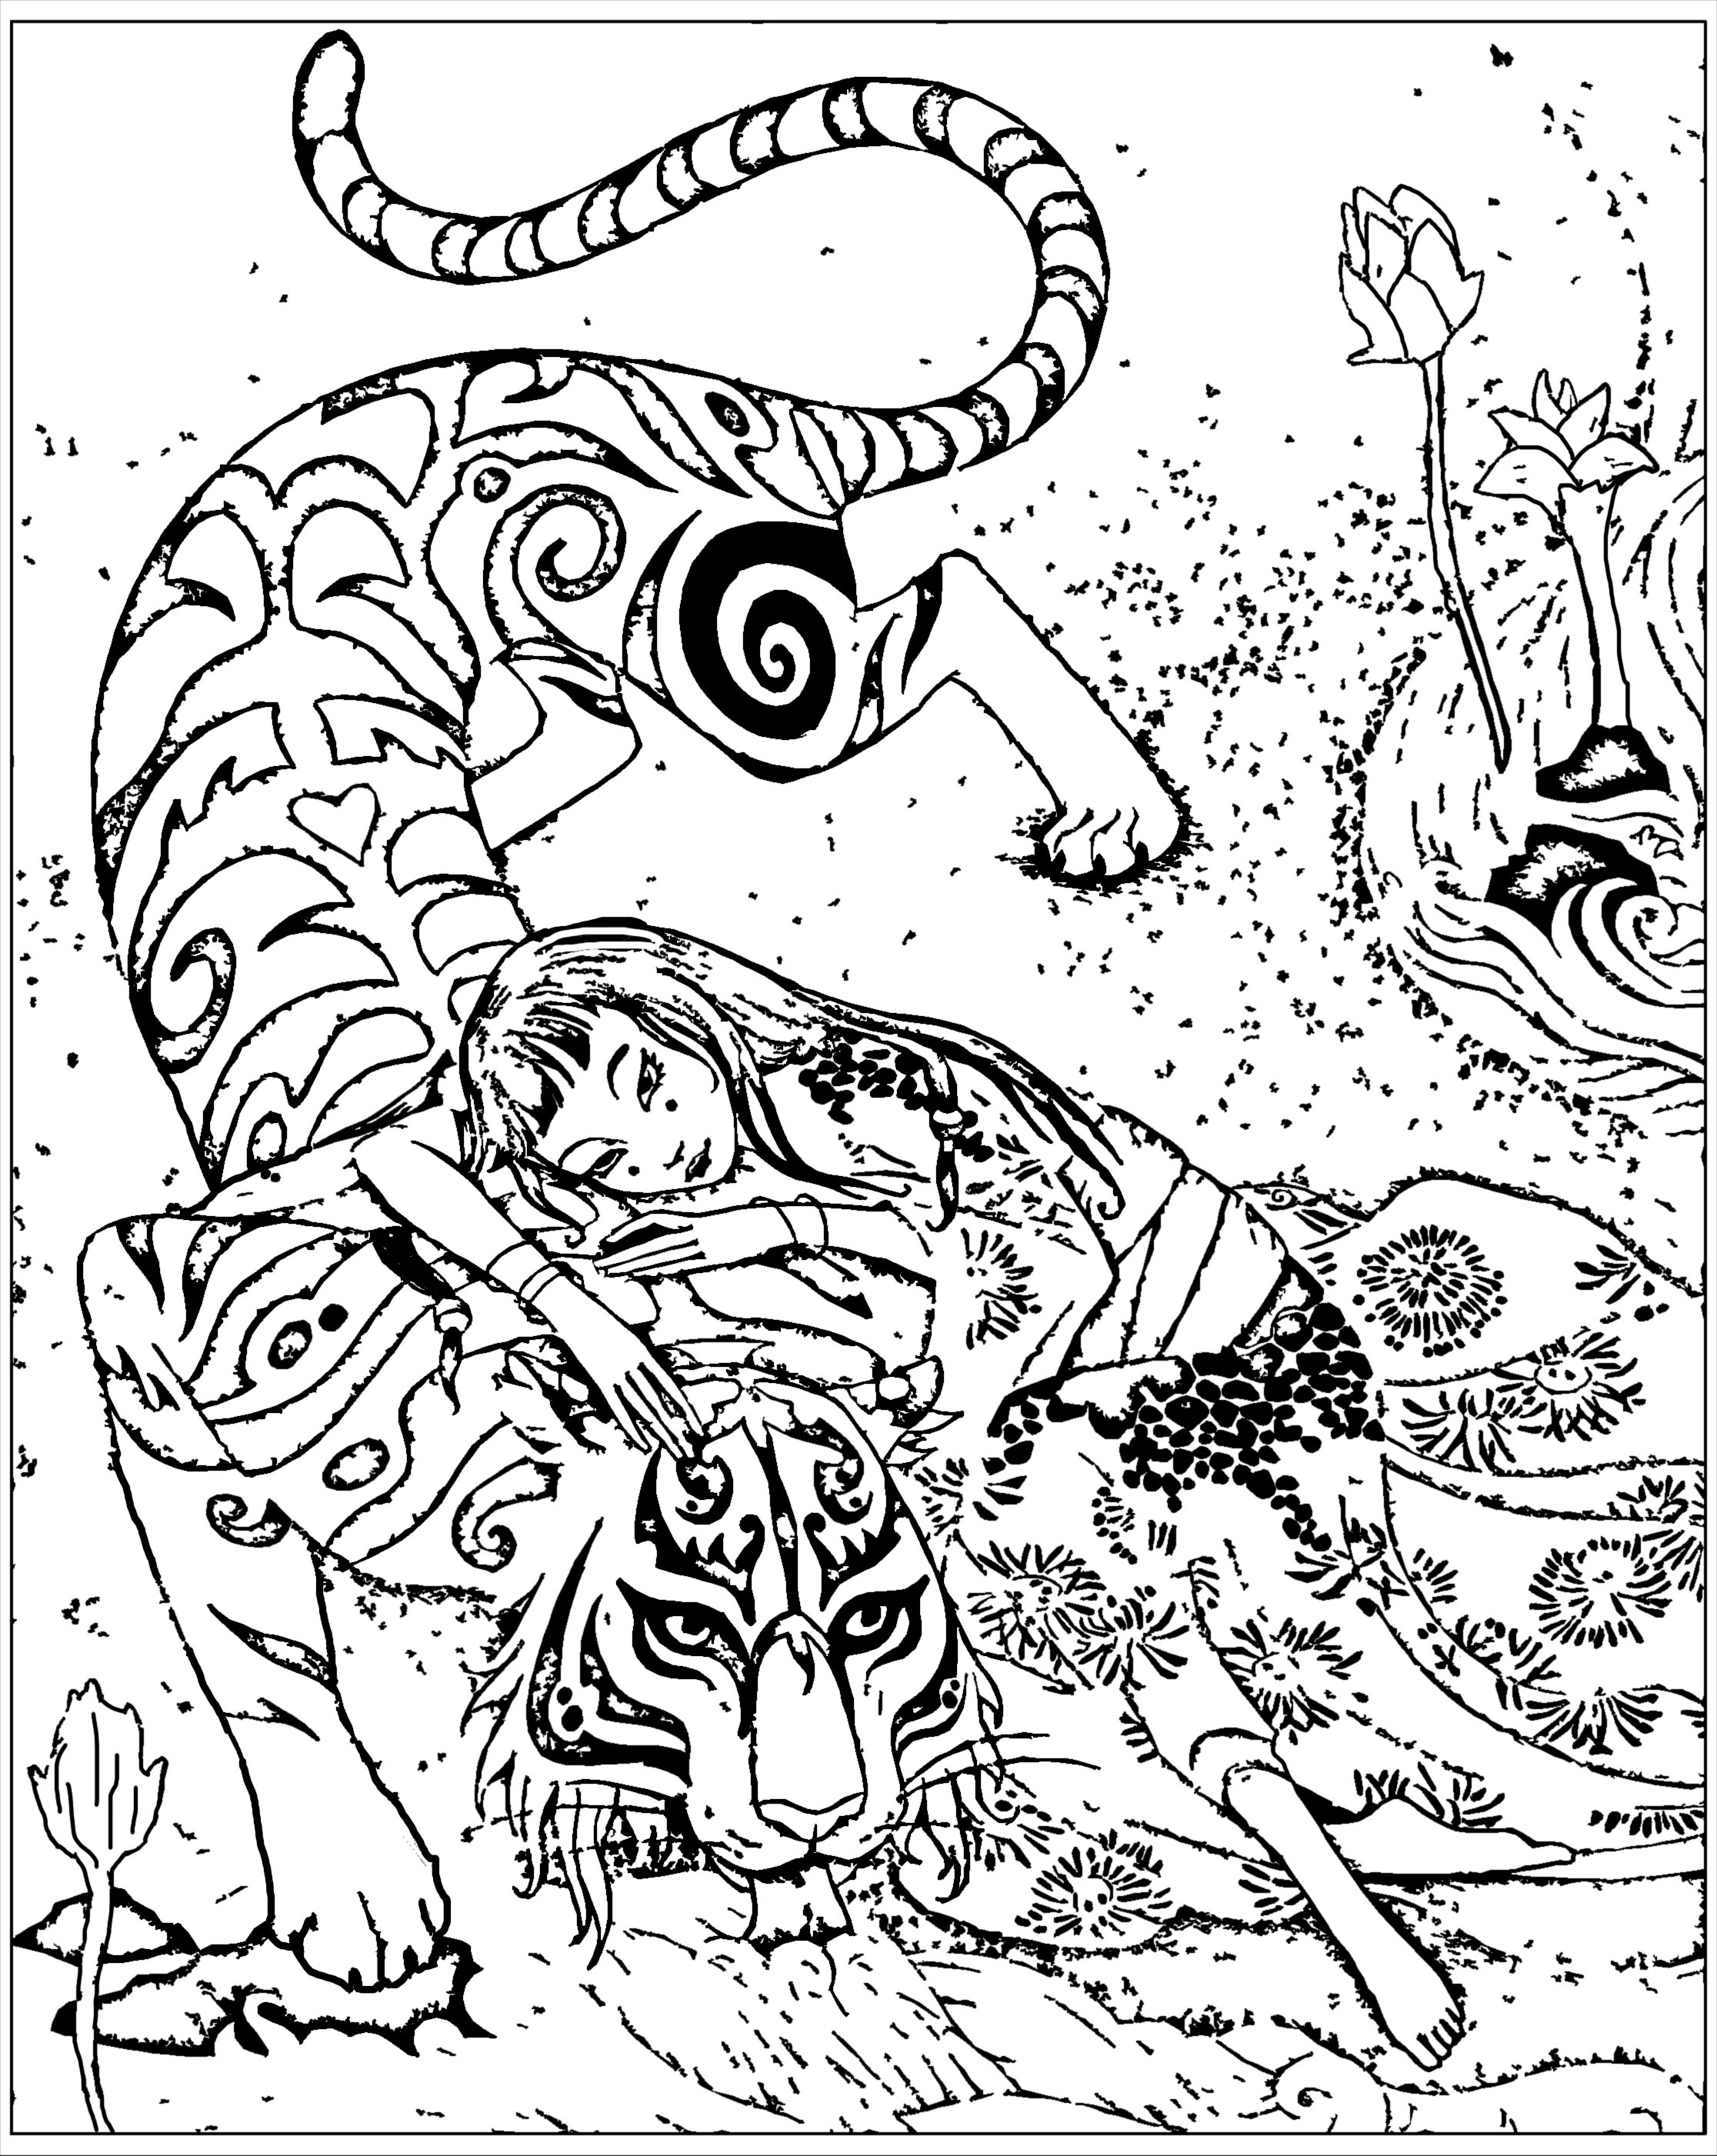 Coloring Page Inspired By The Book Tiger Devoted Qifeng Shen